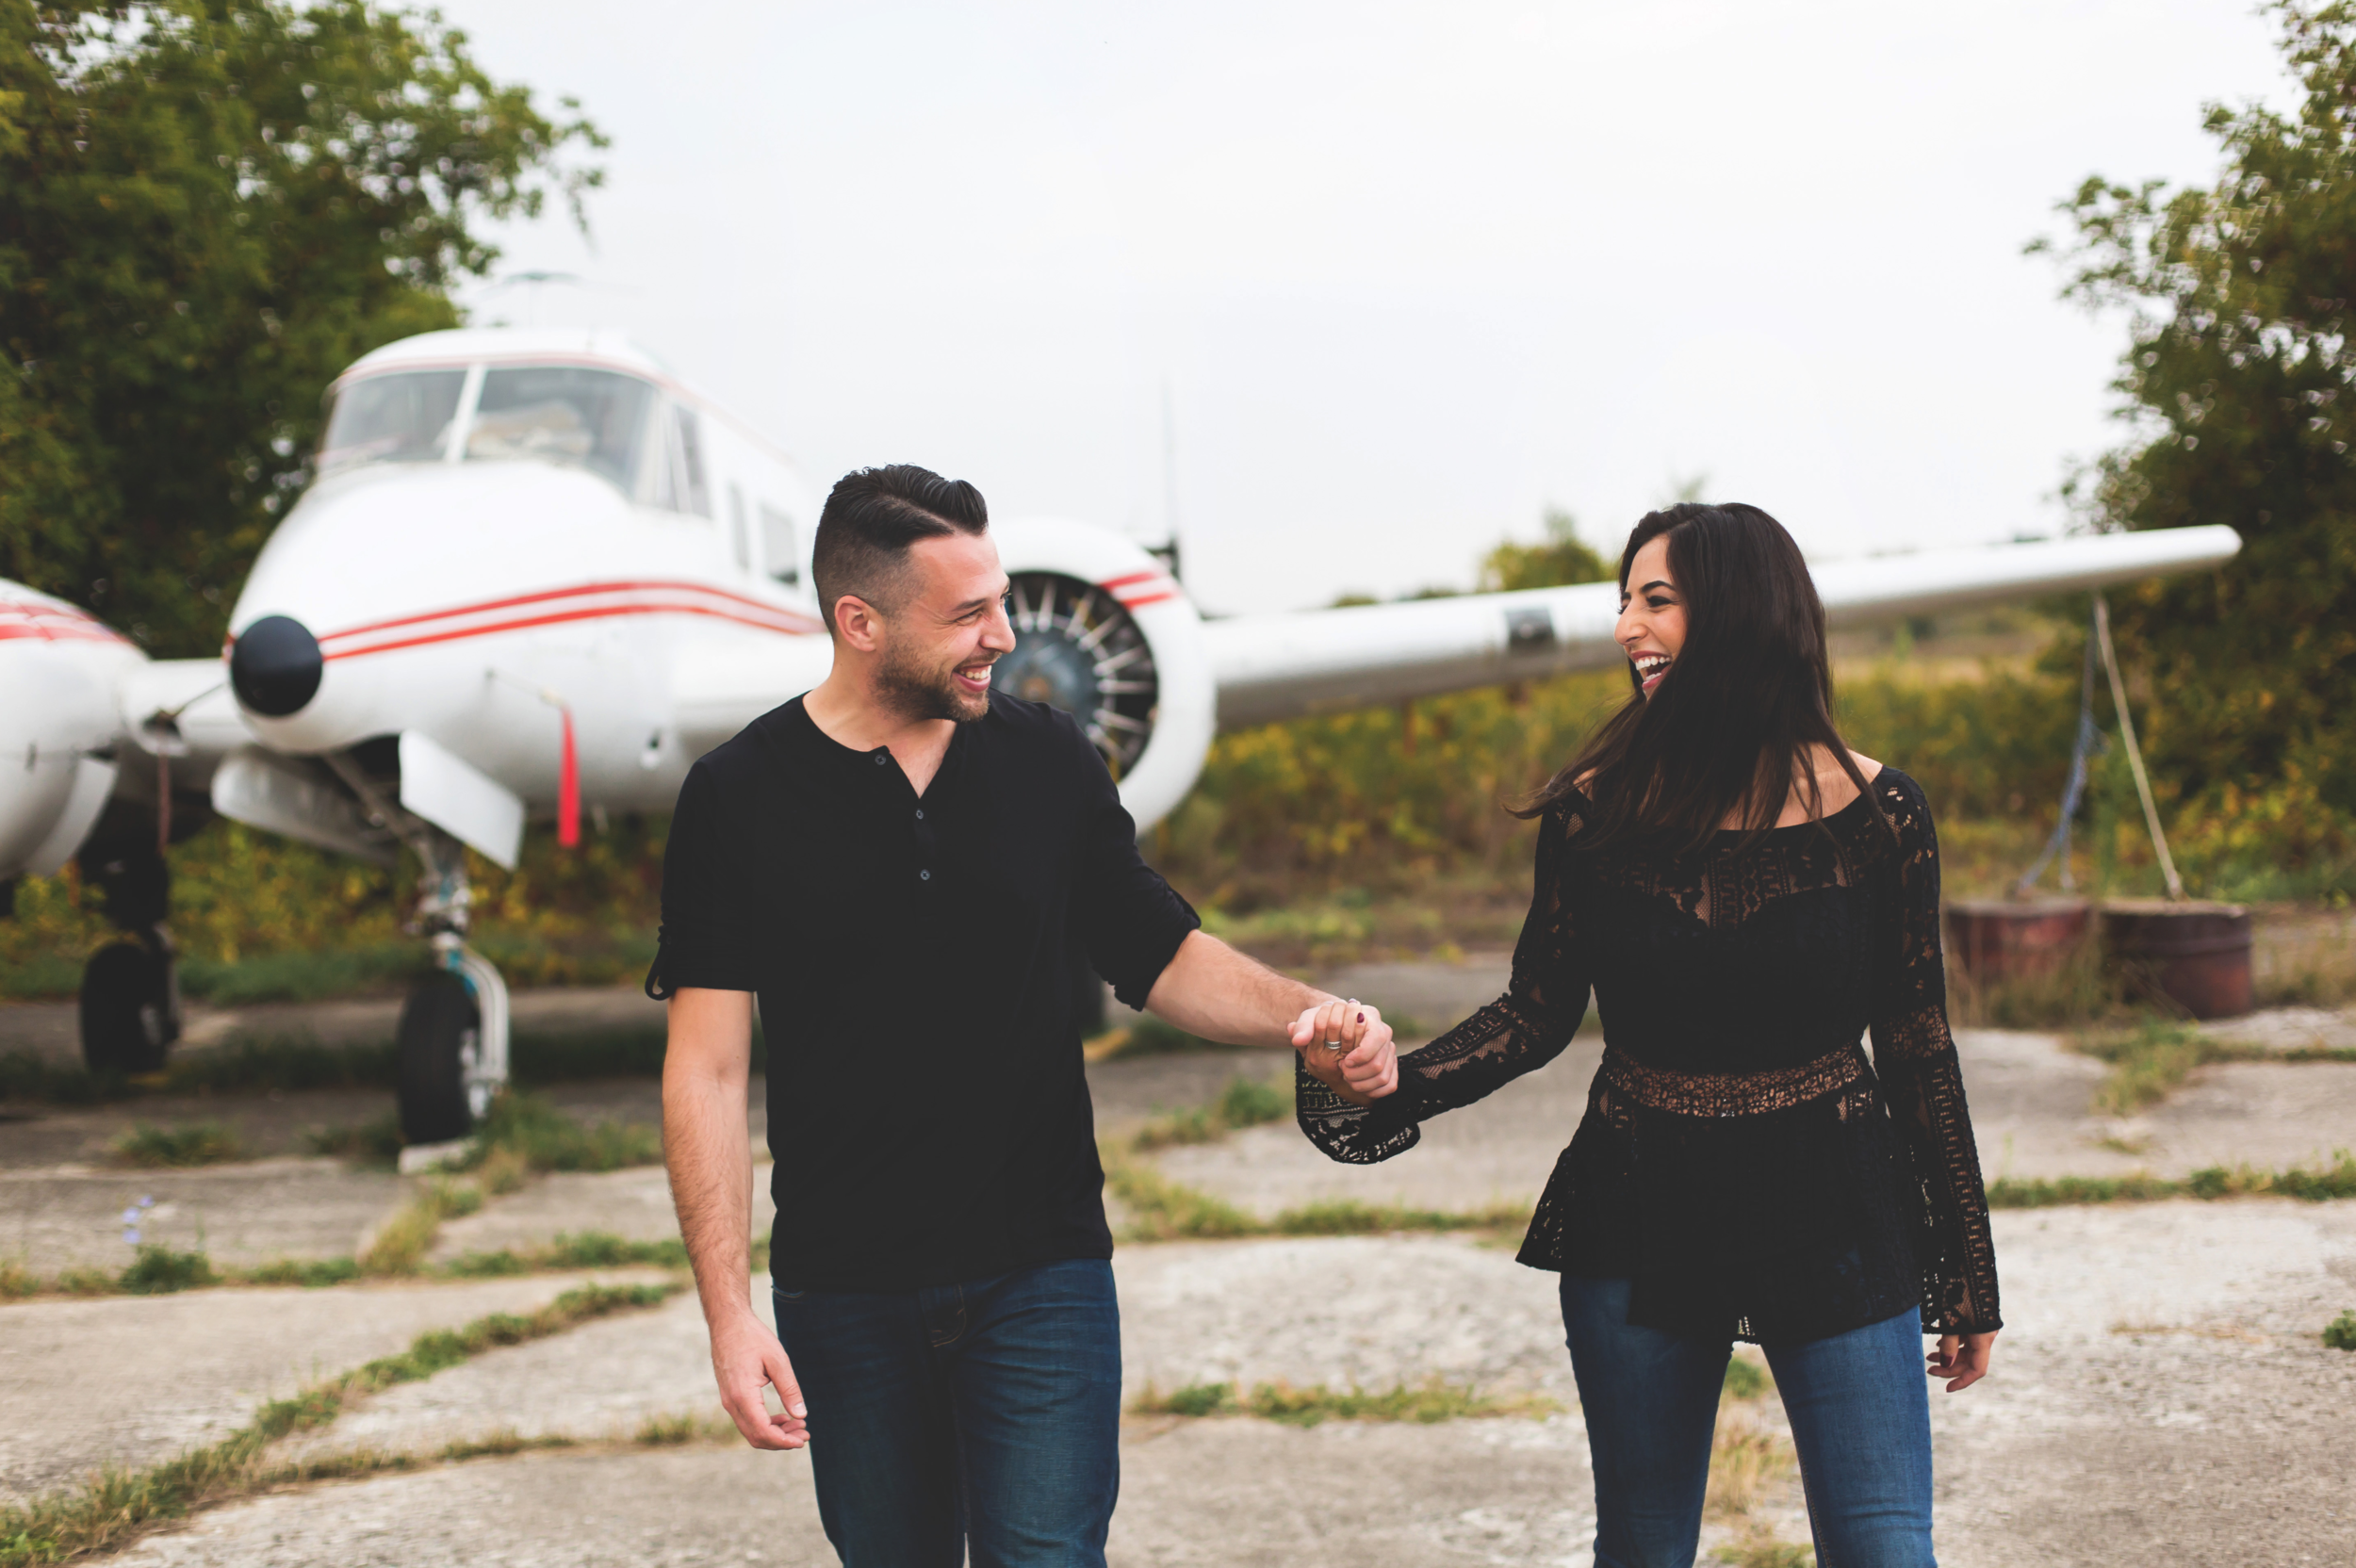 Engagement-Session-Hamilton-Burlington-Oakville-Toronto-Niagara-Wedding-Photographer-Engaged-Photography-Brantford-Airport-HamOnt-Engaged-Moments-by-Lauren-Photo-Image-1.png